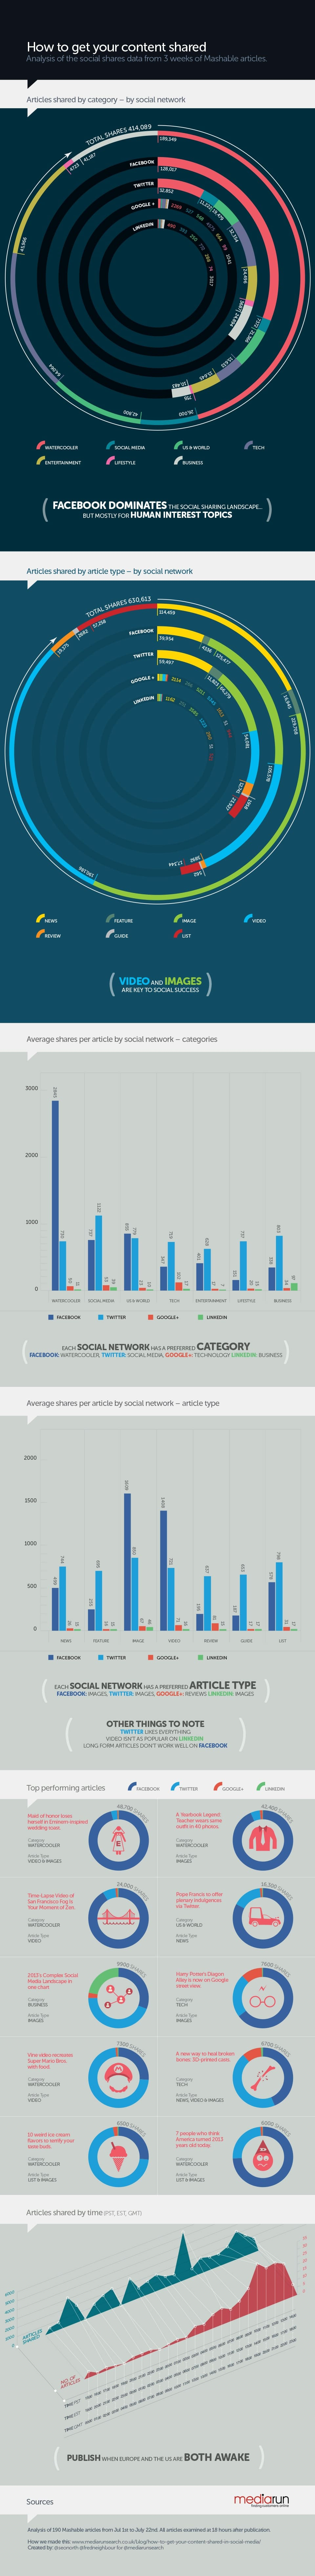 get-content-shared-online-infographic